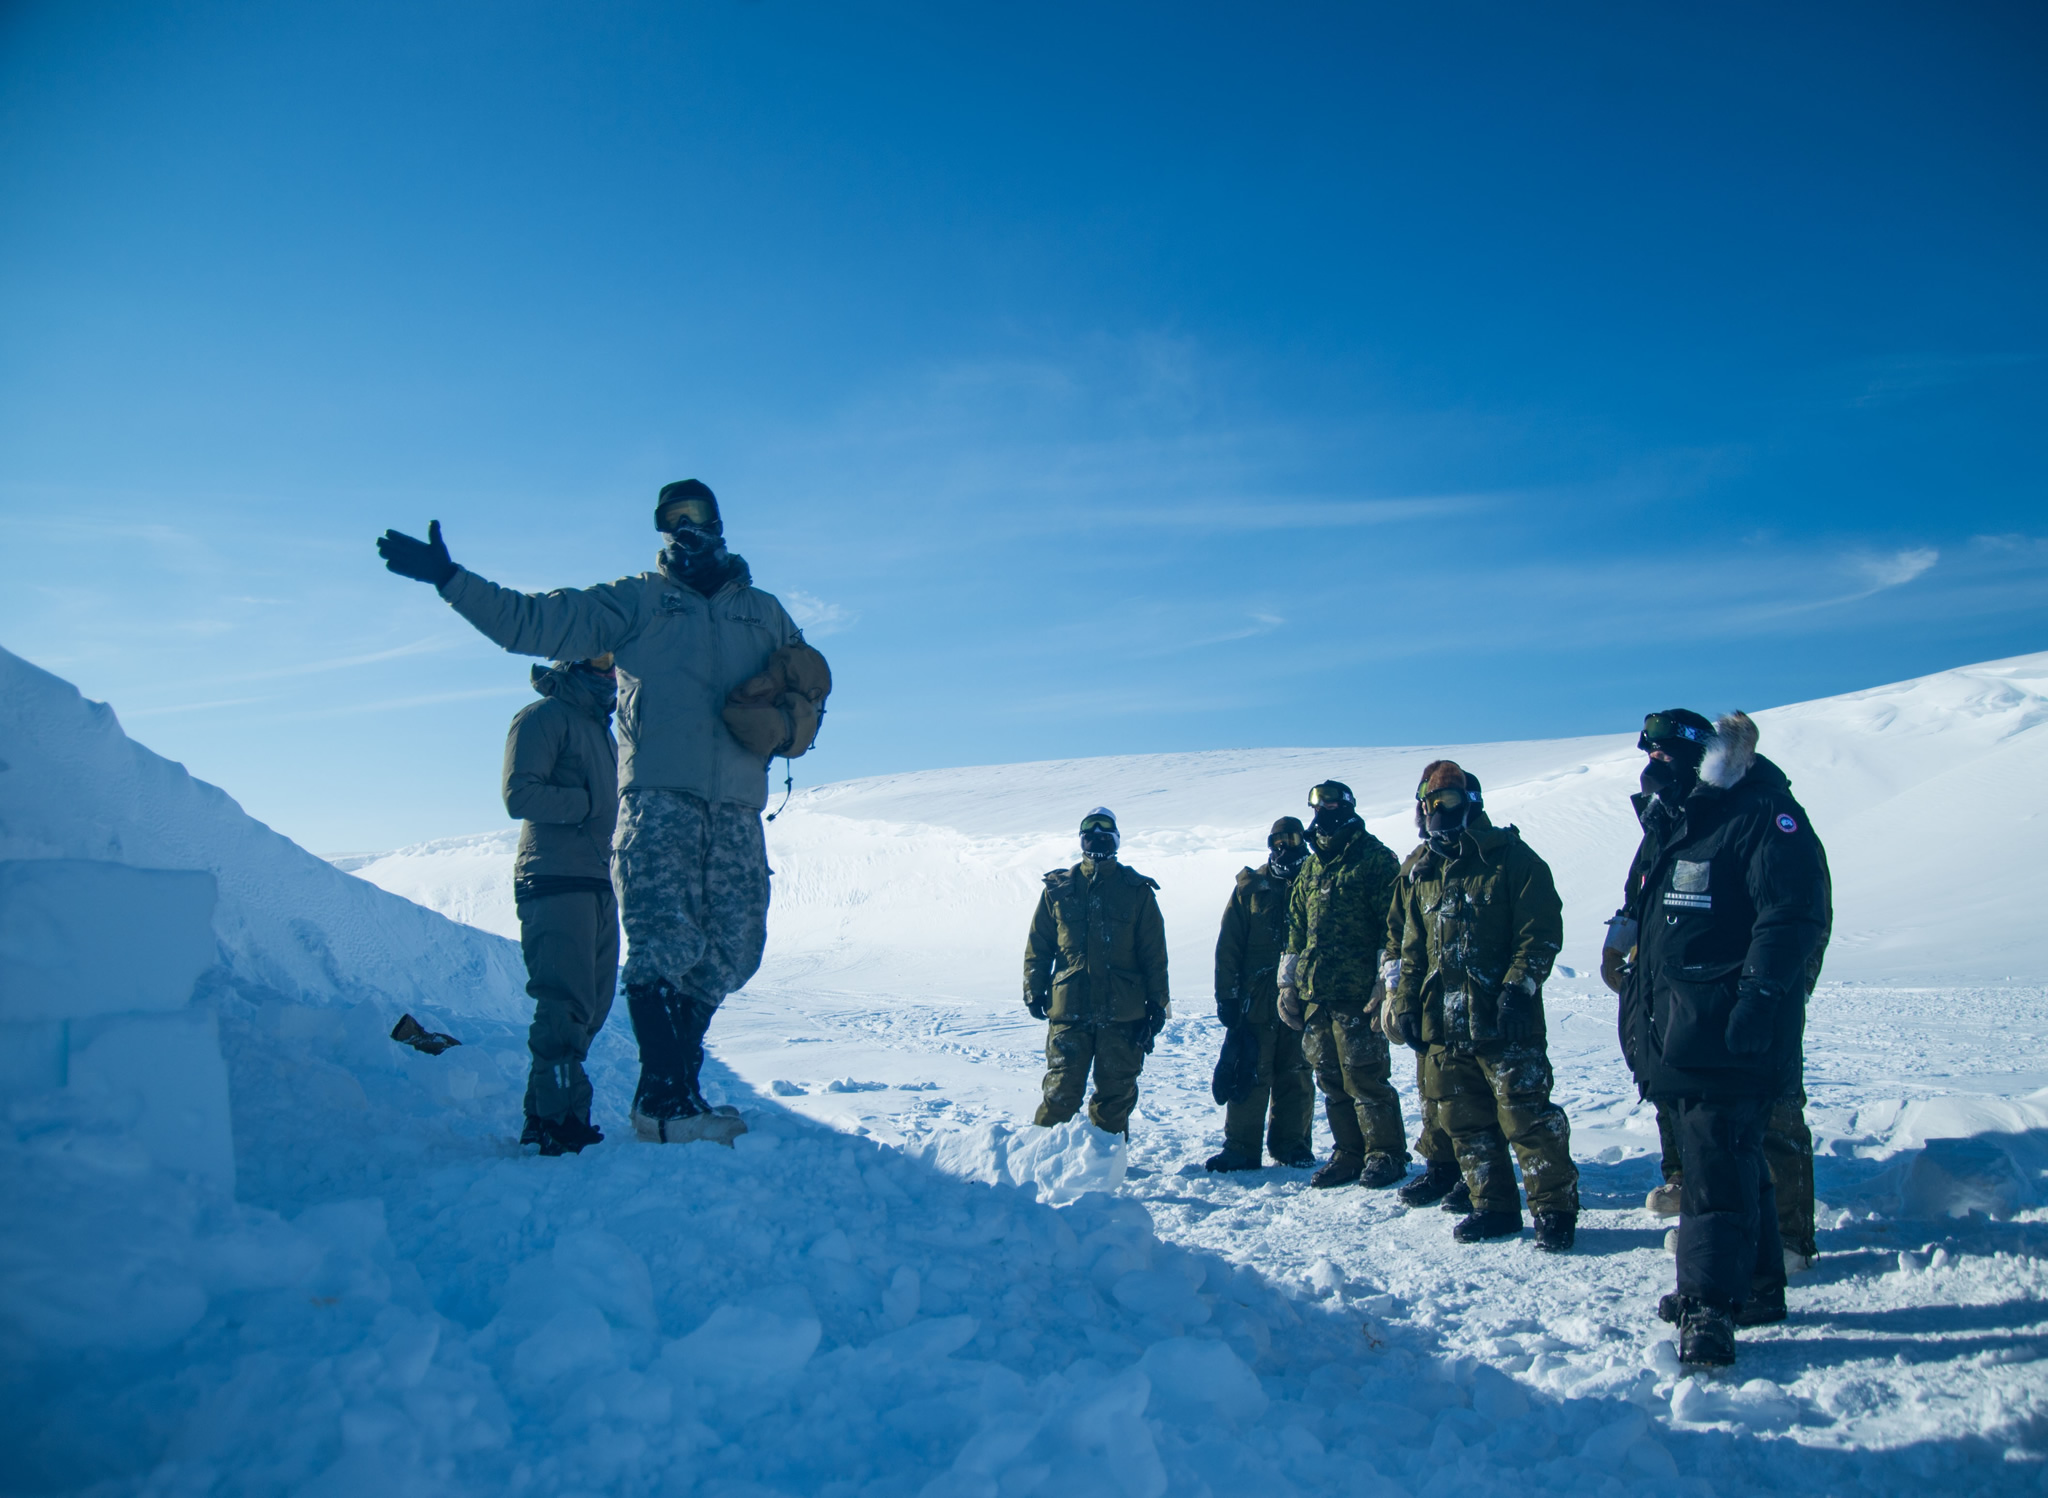 American Staff Sergeant Matt Hinds of the Northern Warfare Training Center instructs members of the 2nd Battalion, The Royal Canadian Regiment on the construction of a snow cave near Resolute Bay, NU, in preparation for Operation NUNALIVUT April 4, 2016. (Photo: Cpl Parks, Task Force Image Technician)